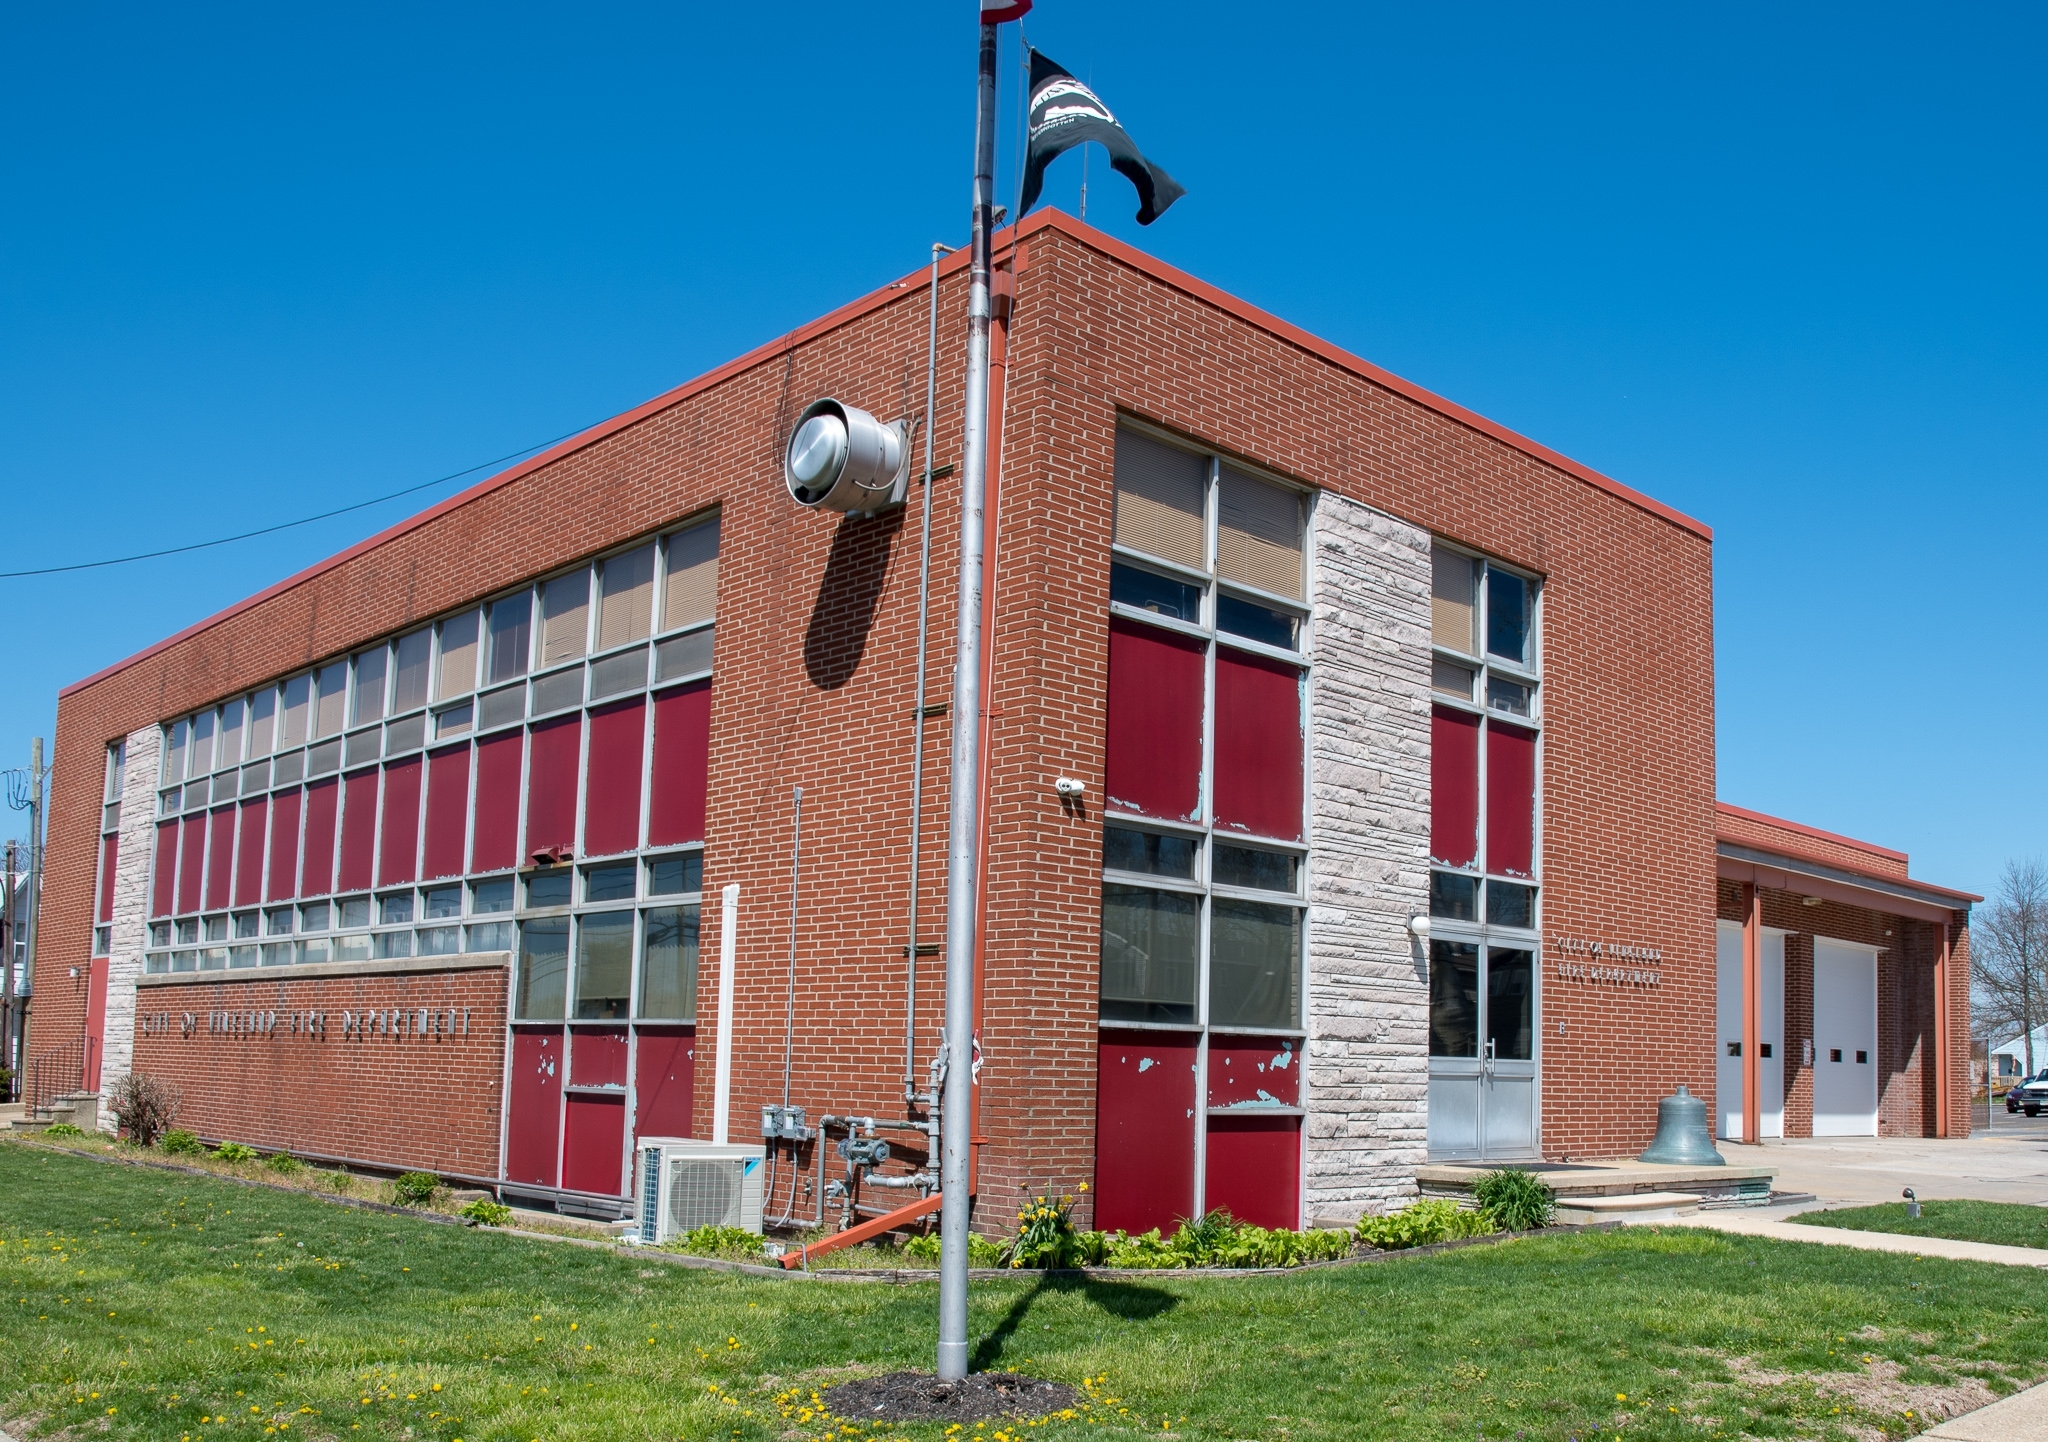 Station 6 - Headquarters - Vineland Fire Department with regard to 48 Hours Fire Shift Schedule